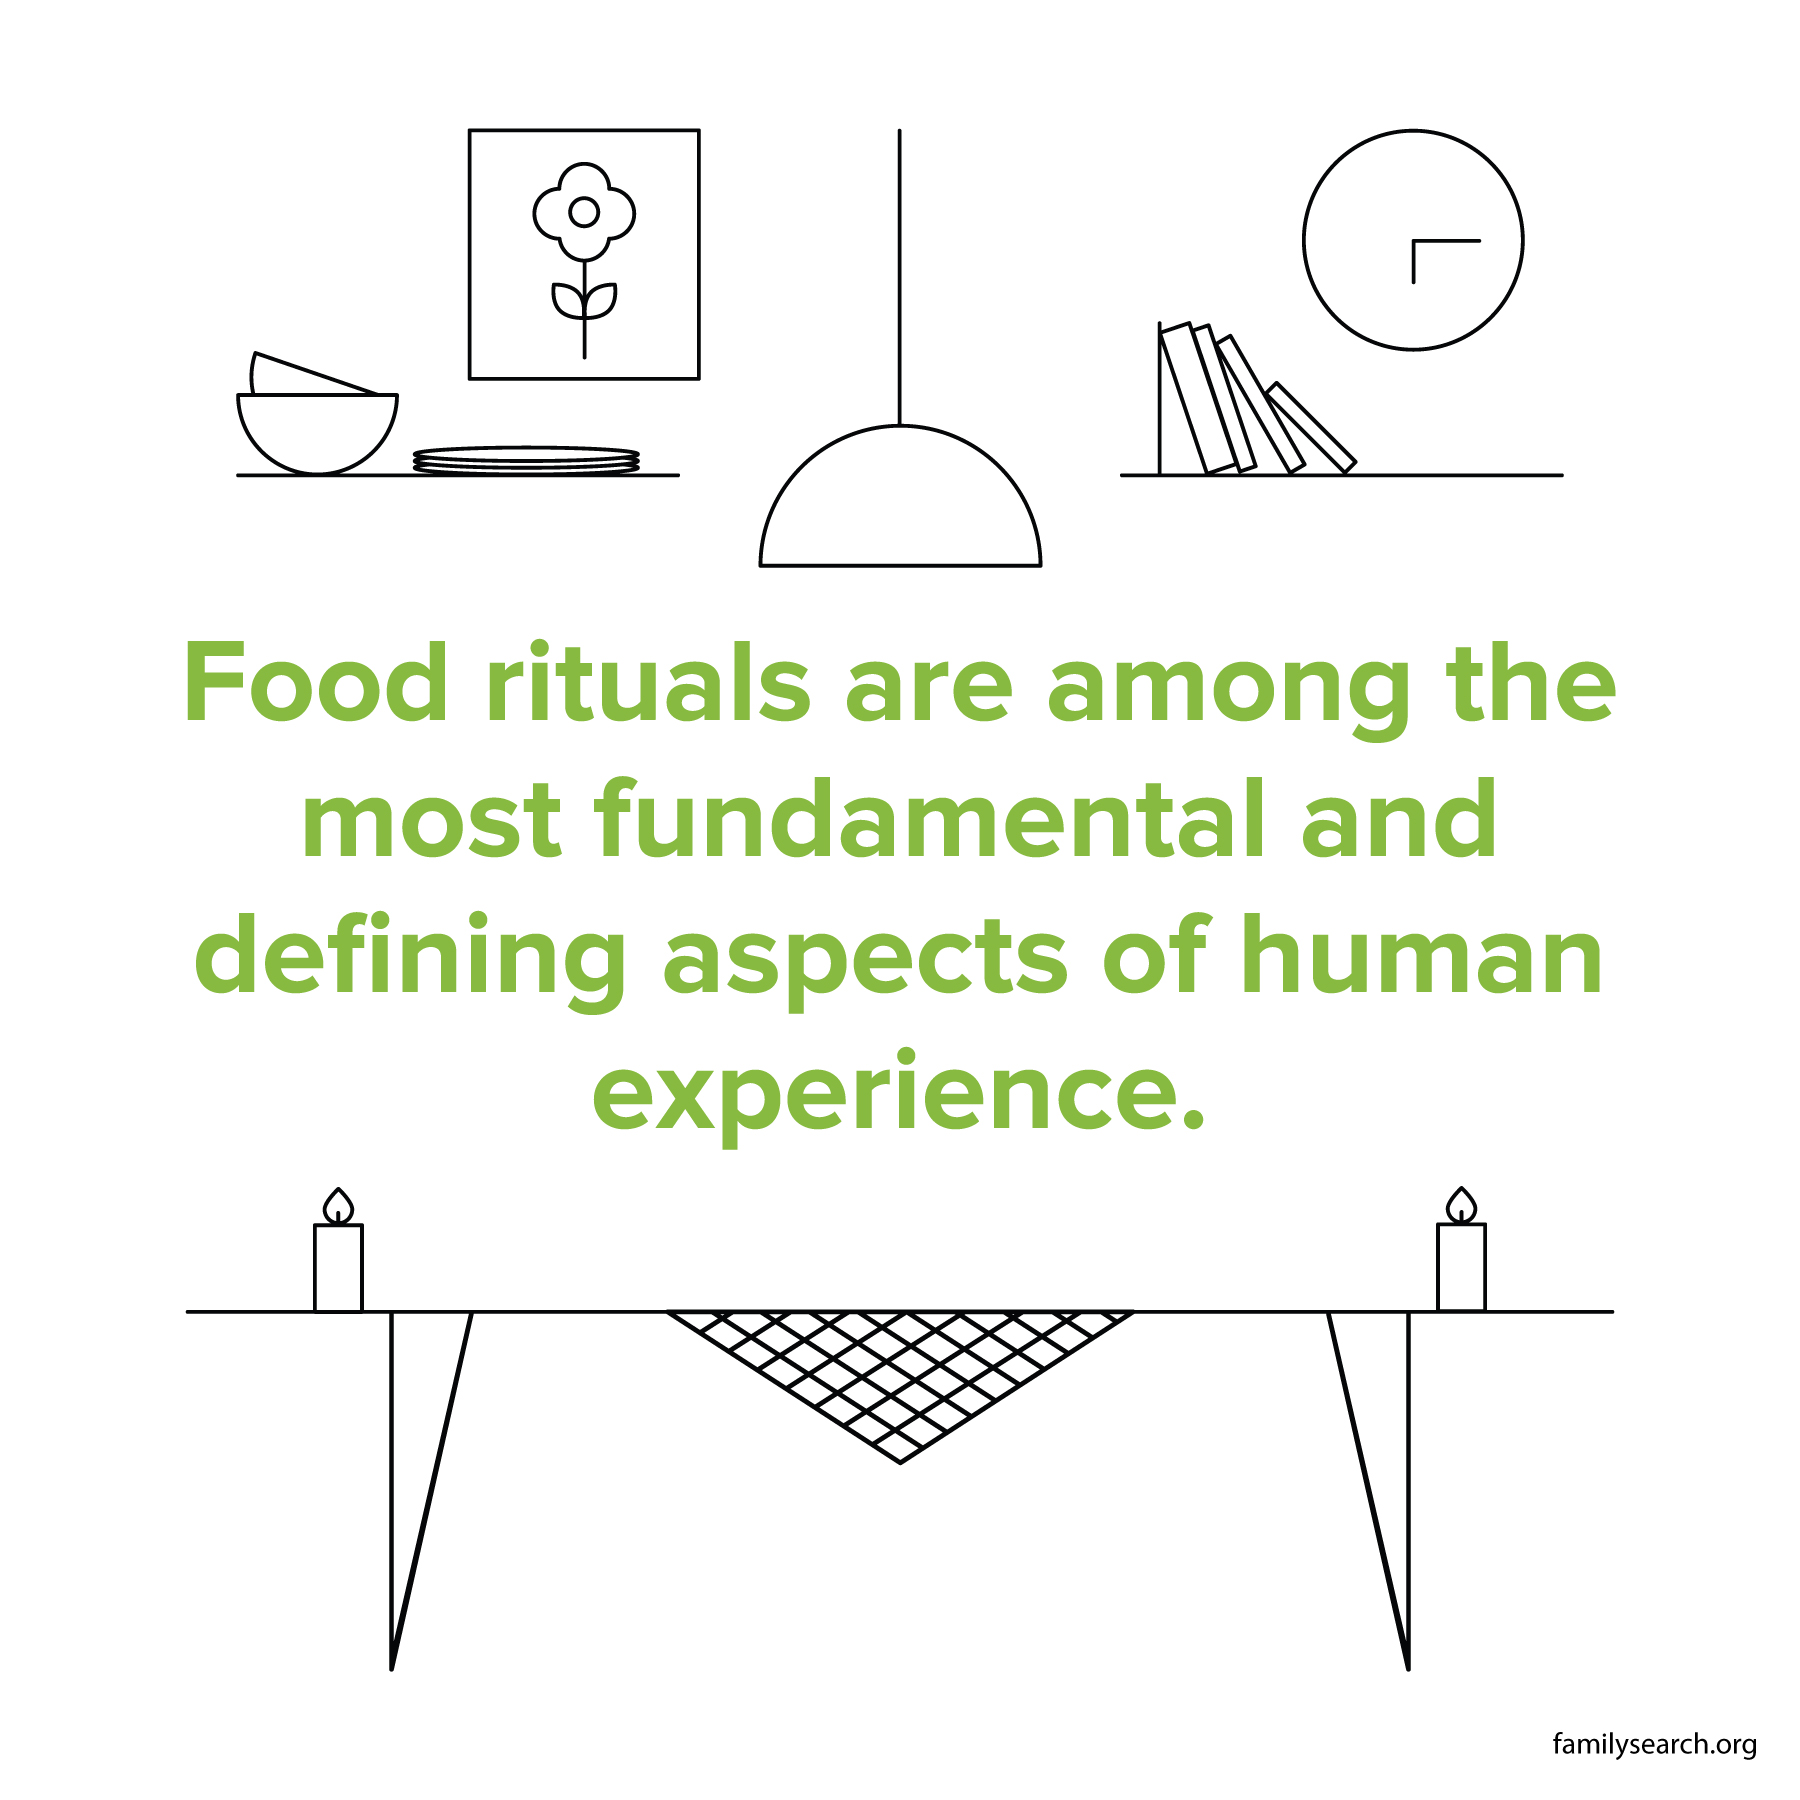 Food rituals are among the most fundamental and defining aspects of human experience.